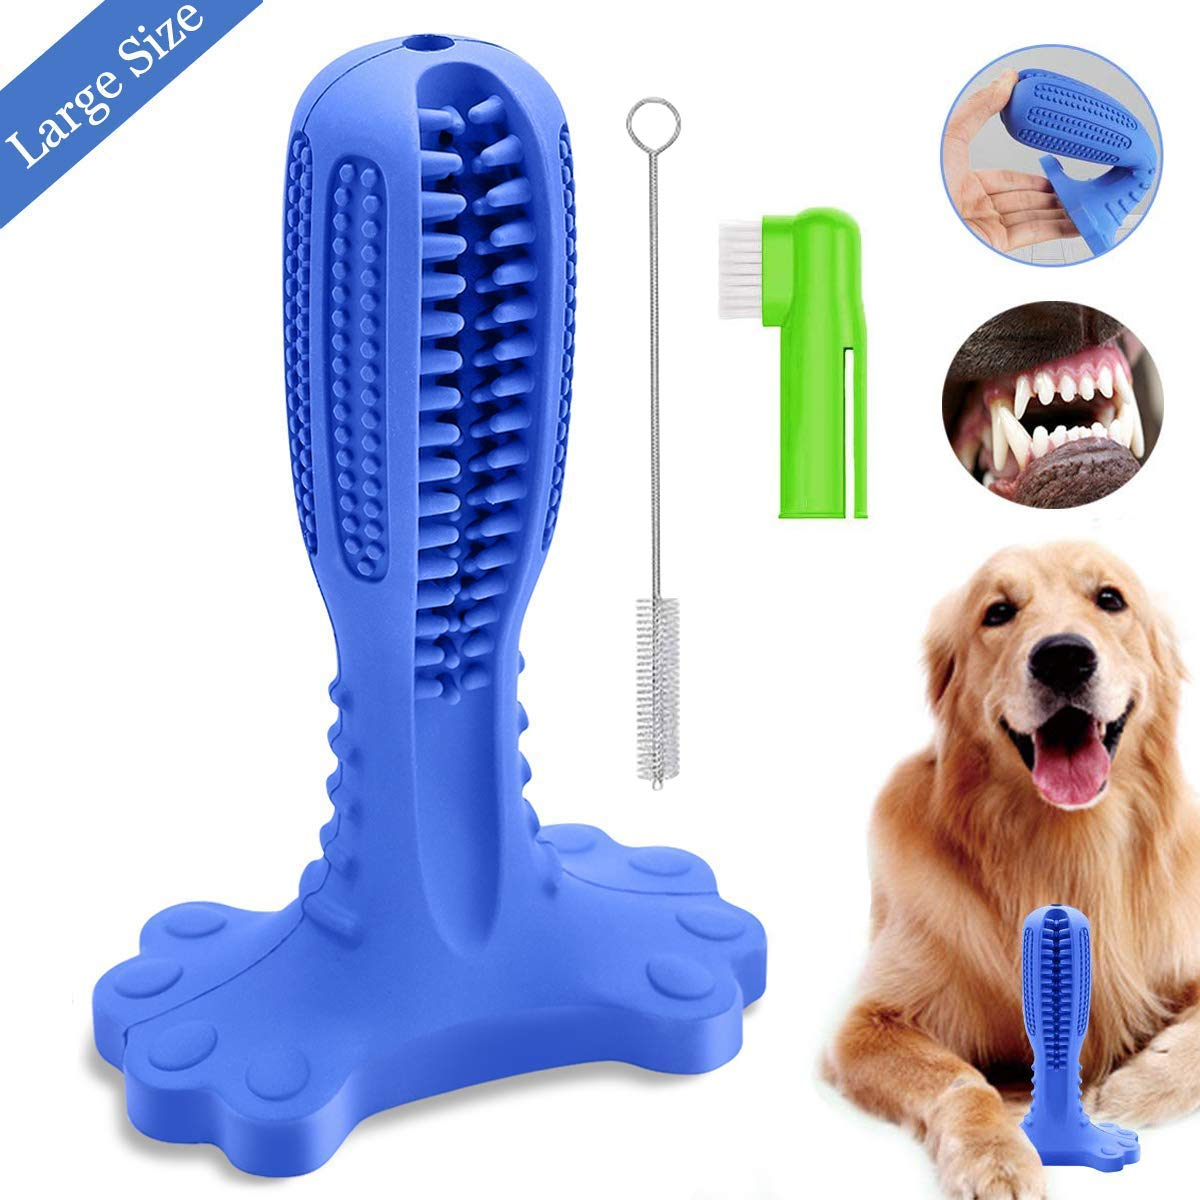 ANKEWAY Dog Chew Toothbrush-2019 Upgraded Version Large Size Natural Rubber Dog Teeth Cleaner Brushing Stick for Small, Medium and Large Dogs (Toothbrush) by ANKEWAY